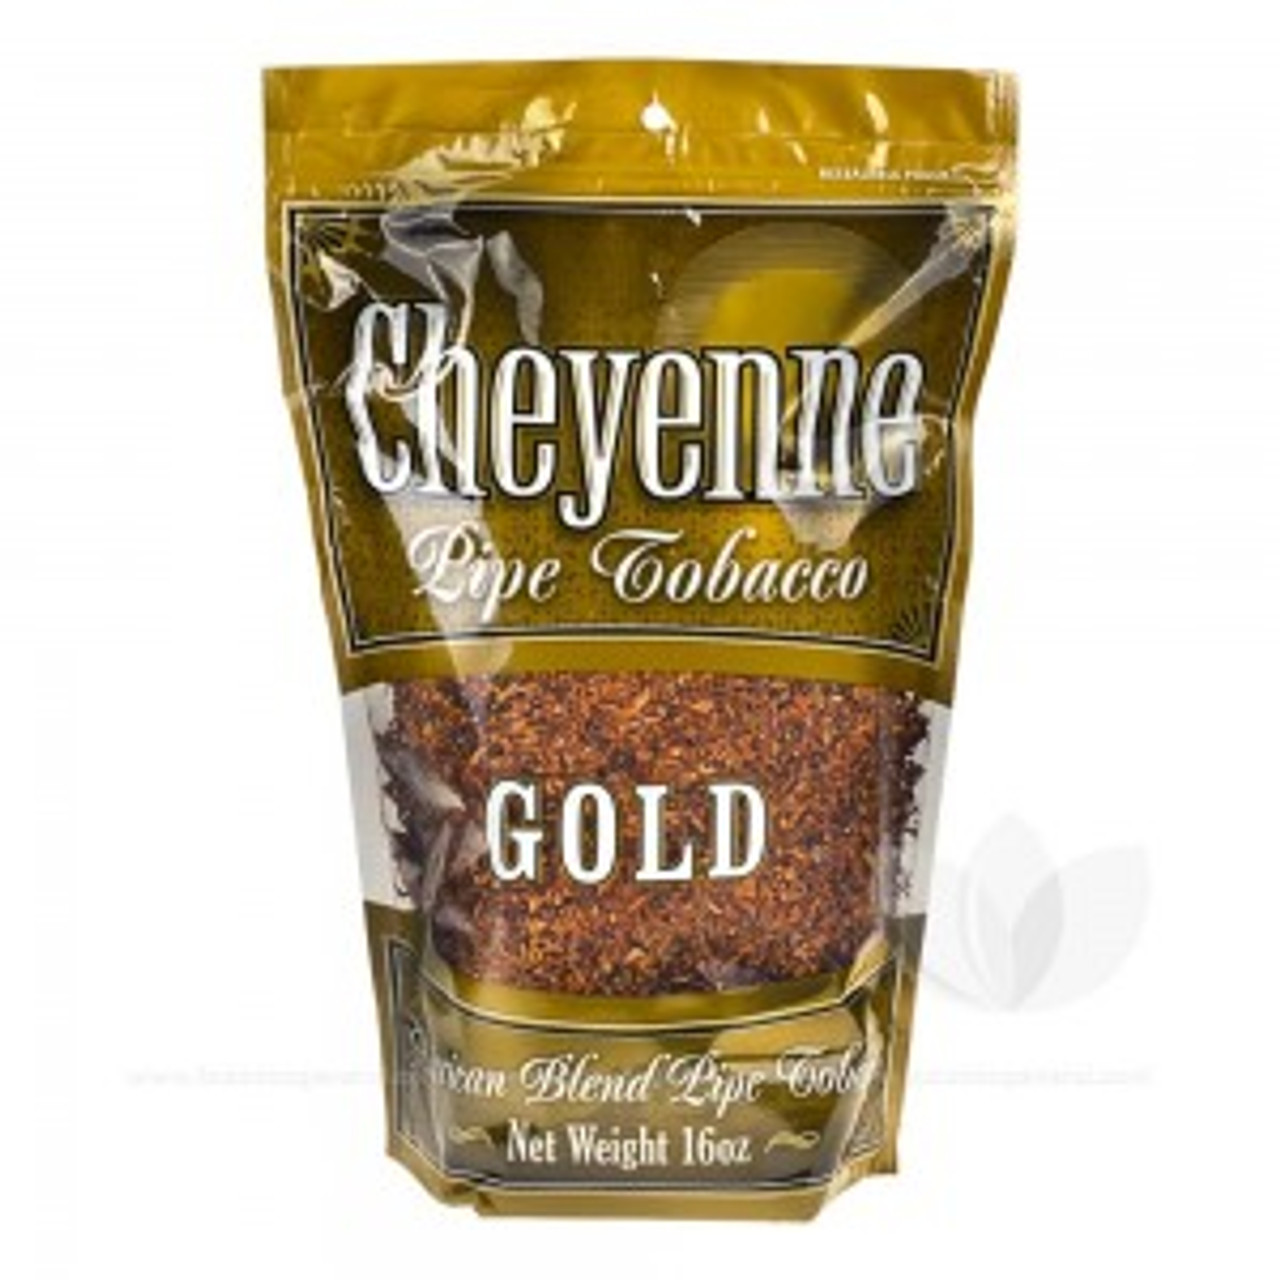 Cheyenne Fine-Cut Tobacco Gold | 16 Oz. Bag